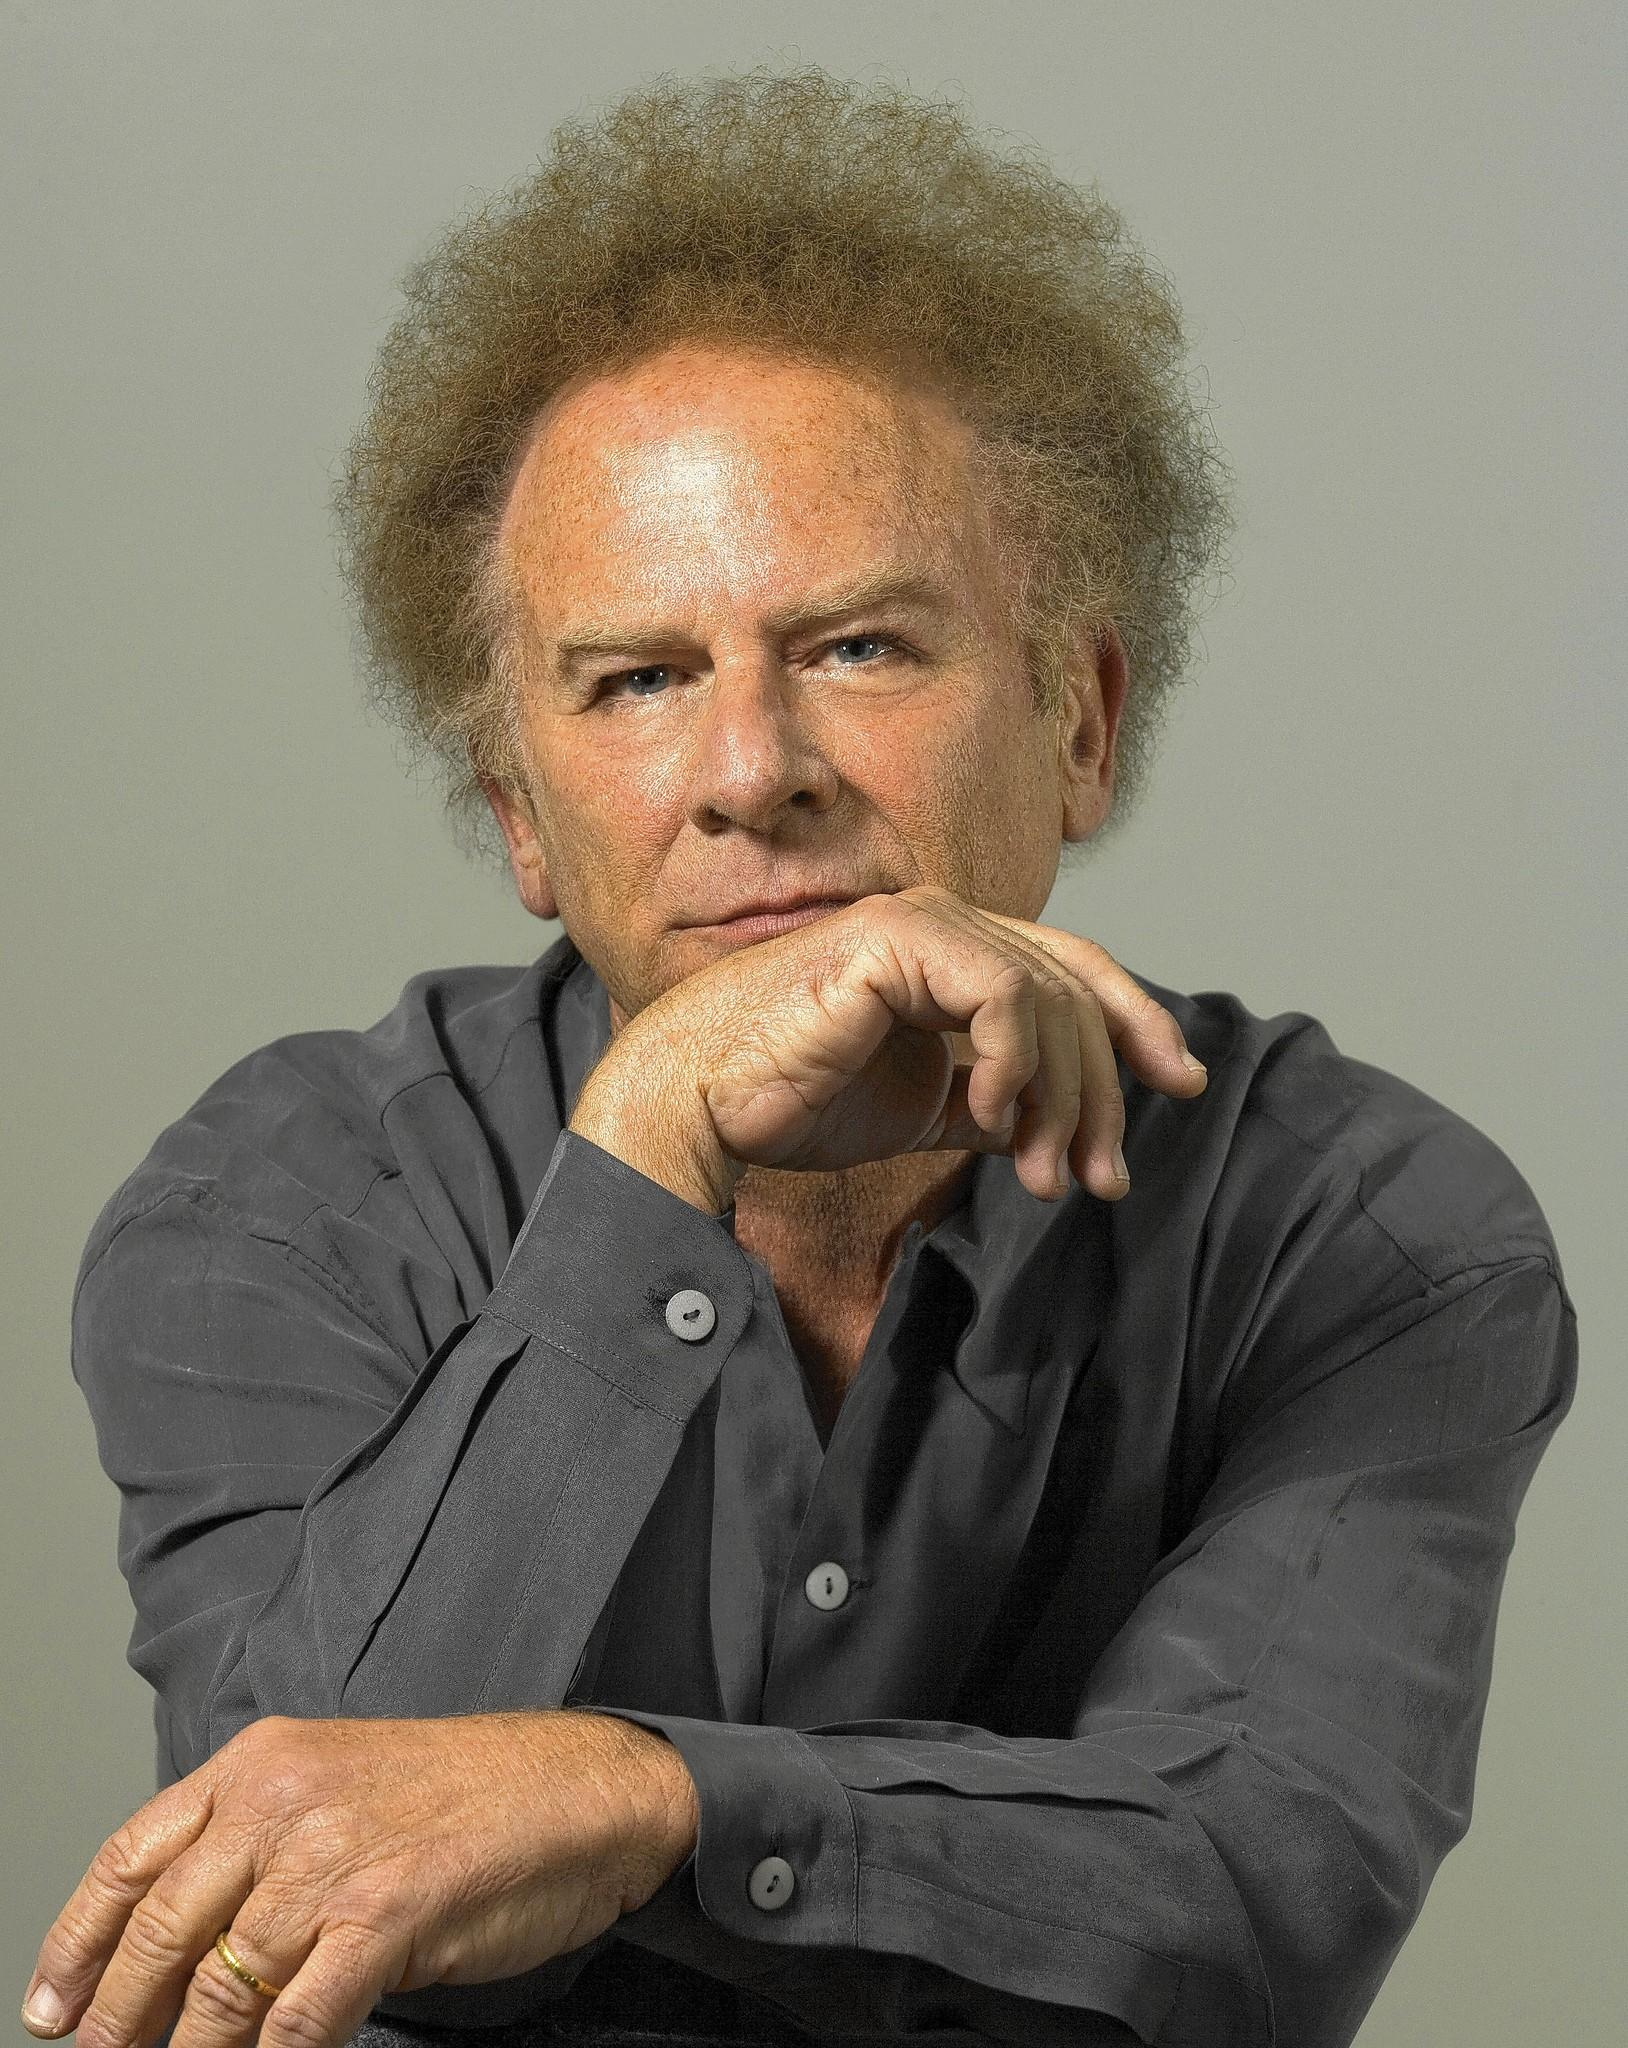 Art Garfunkel will perform Feb. 20 at Plaza Live in Orlando.